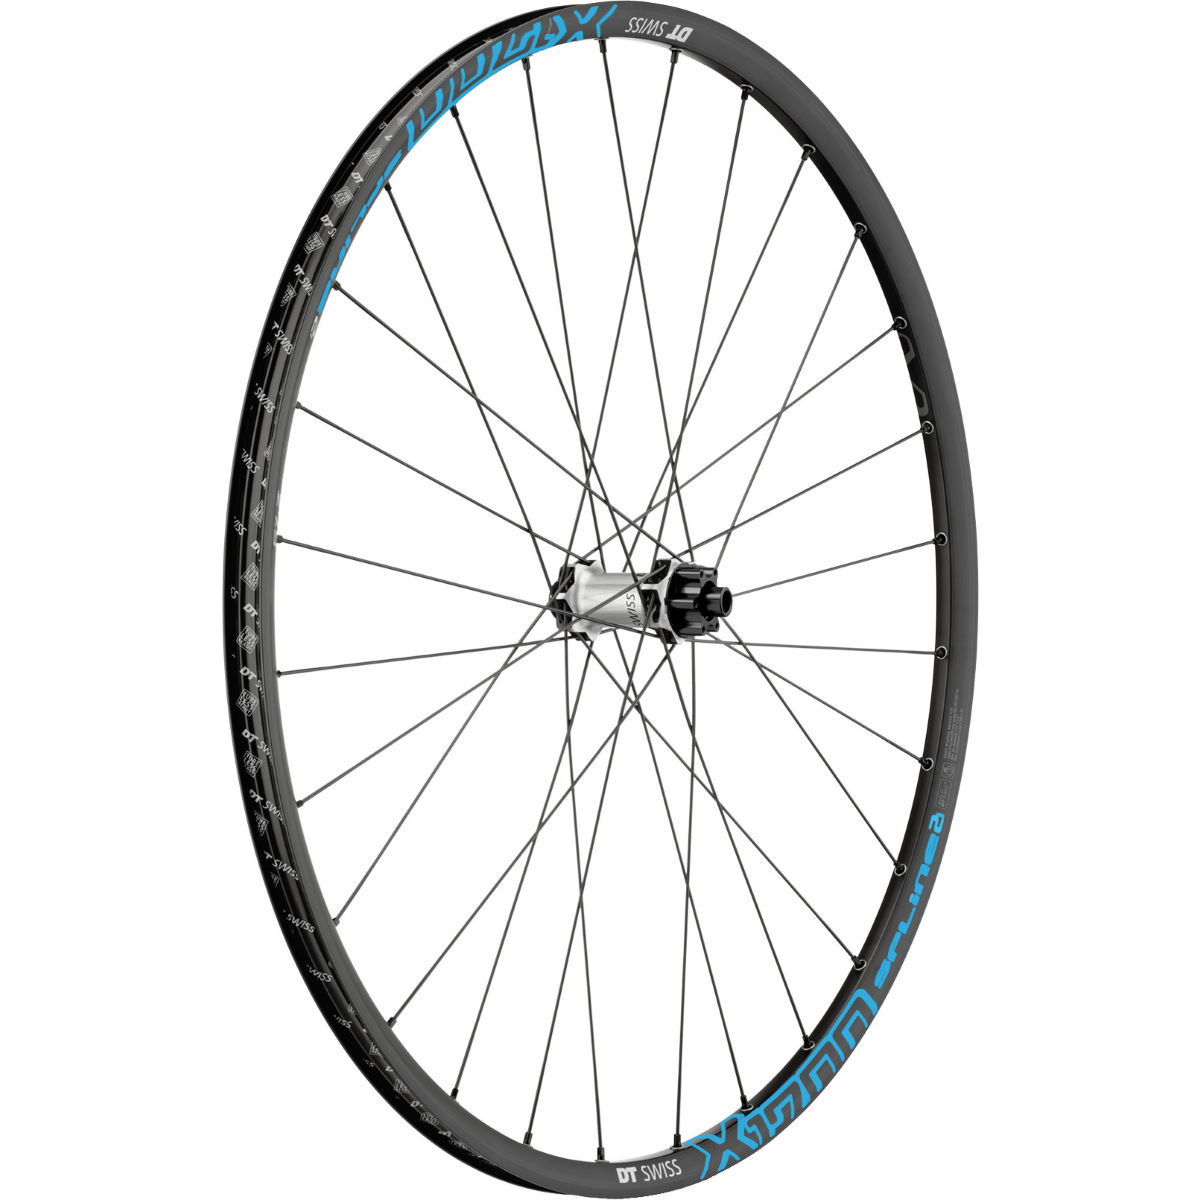 Roue avant VTT DT Swiss X 1700 Spline Two - 29'' 6-Bolt Black-Blue